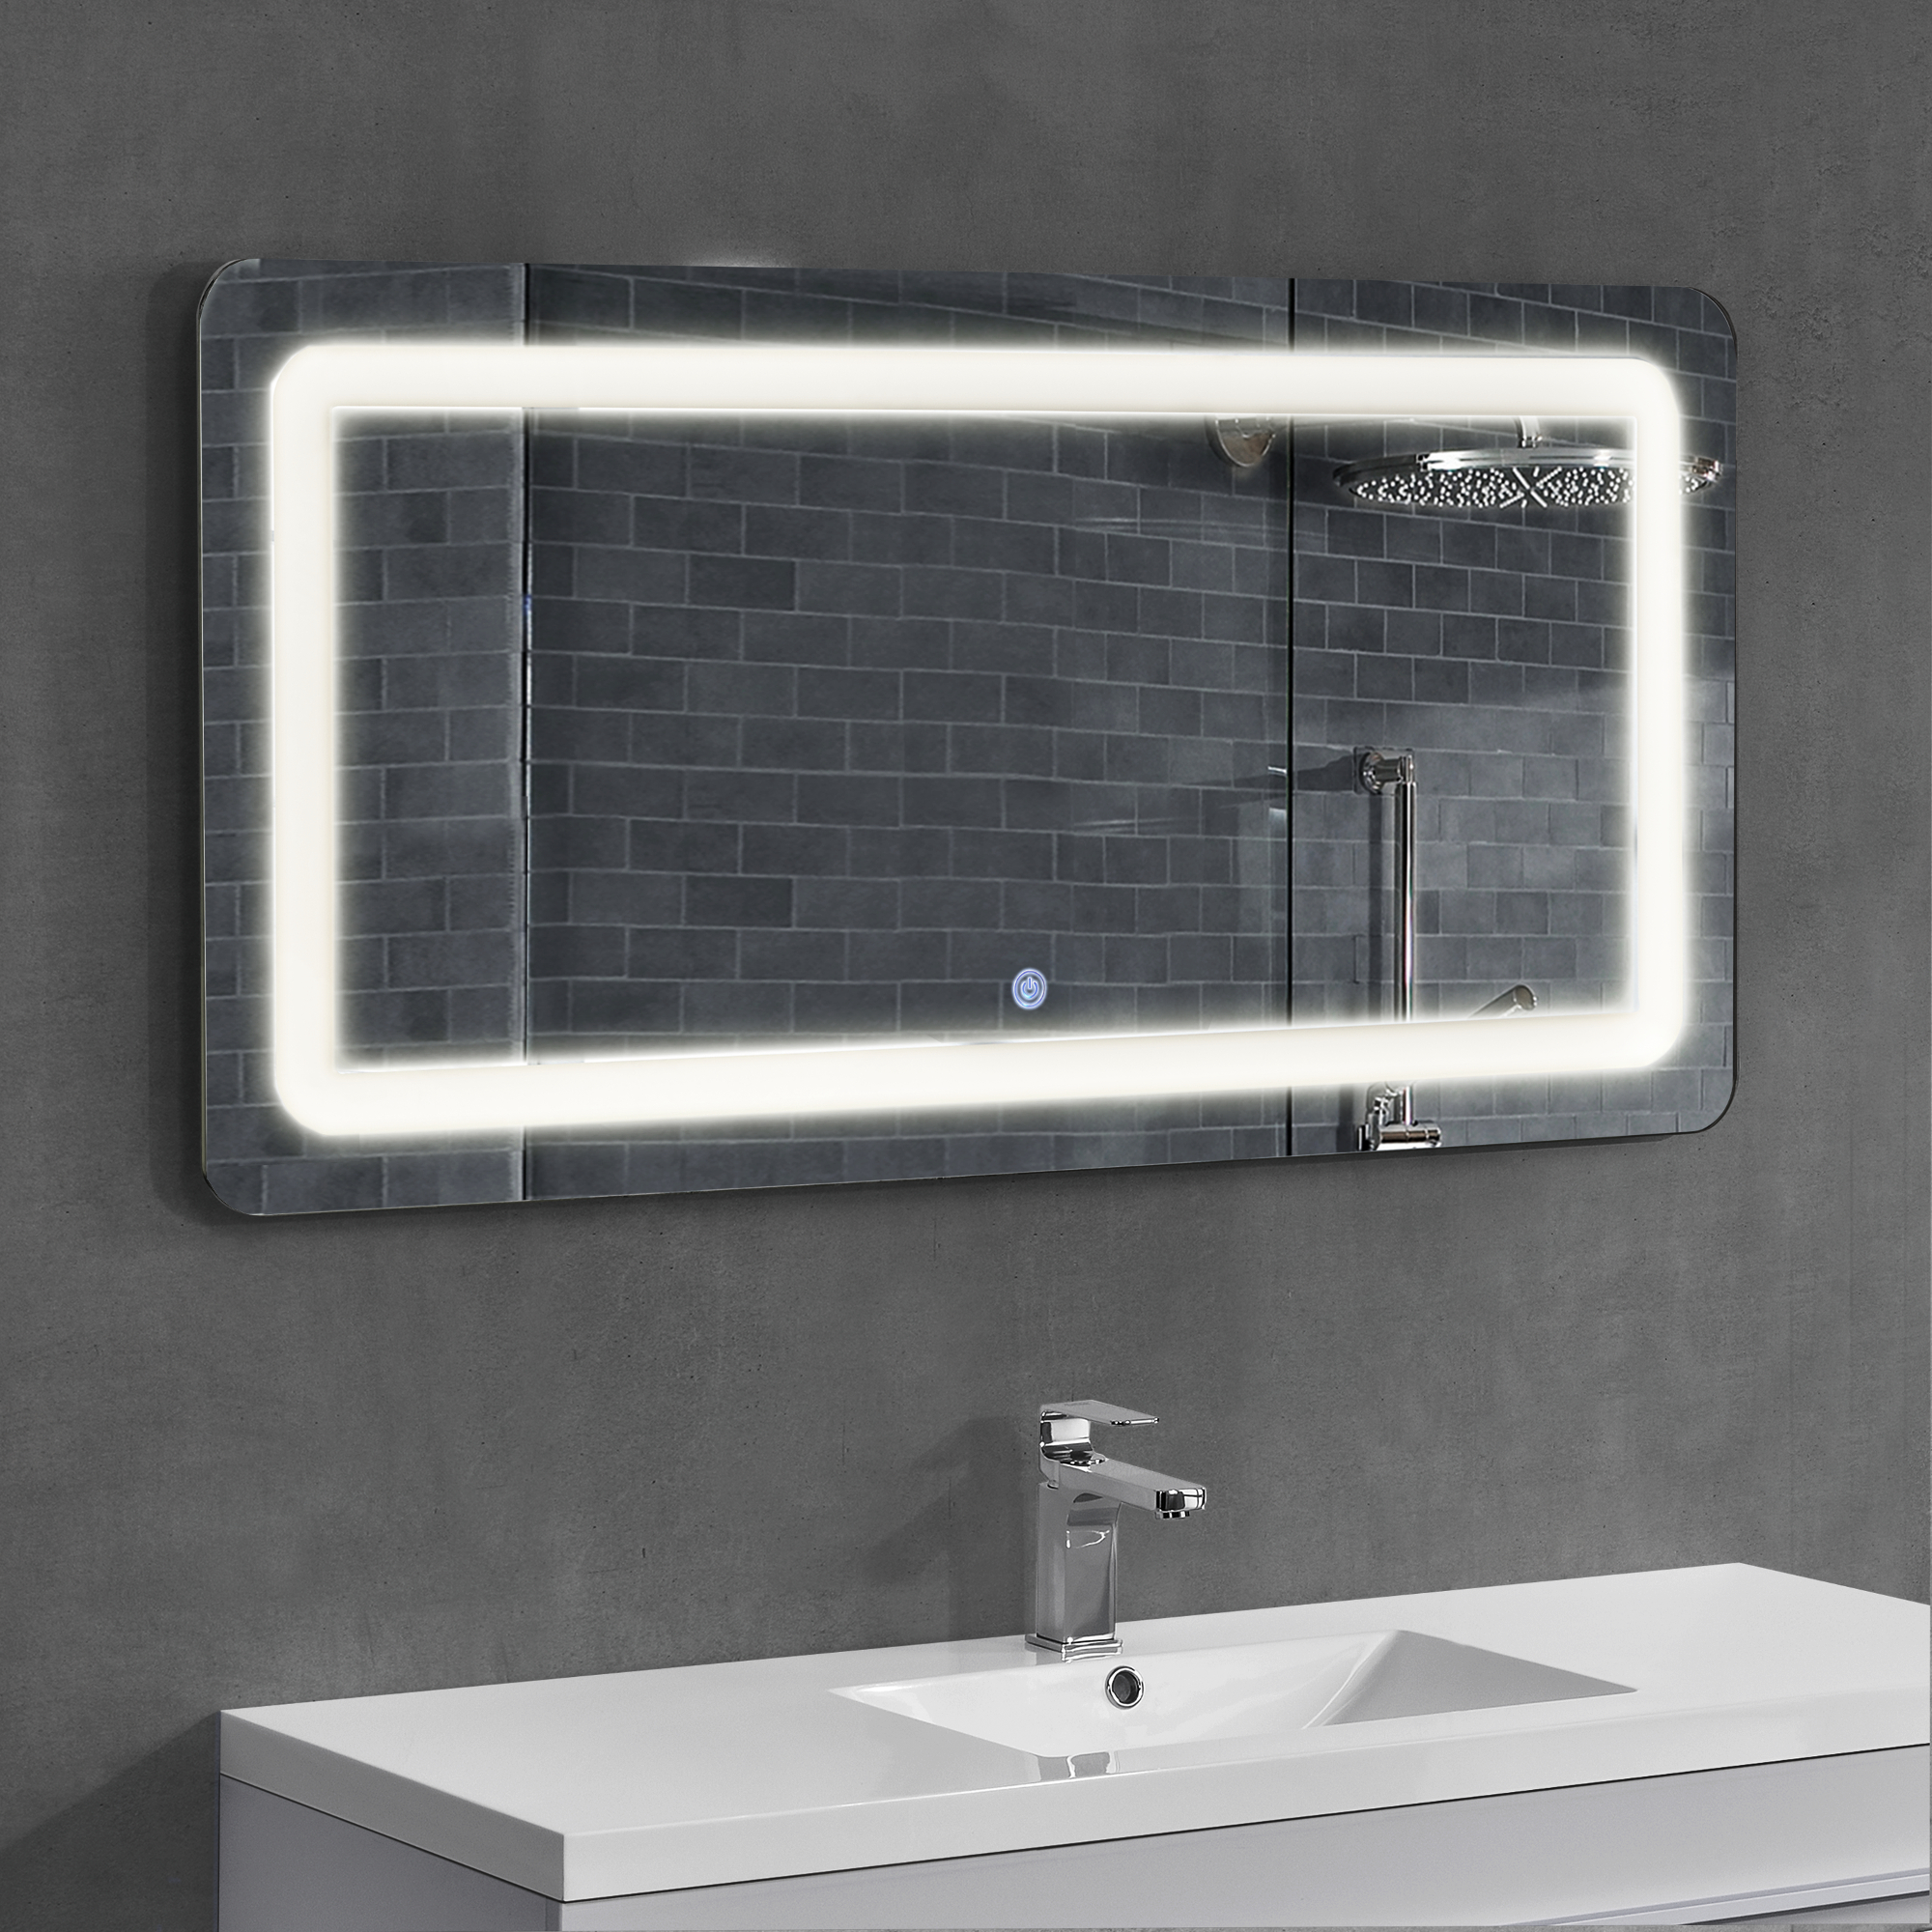 Led bathroom light wall mirror light mirror for Miroir 50 x 70 cm